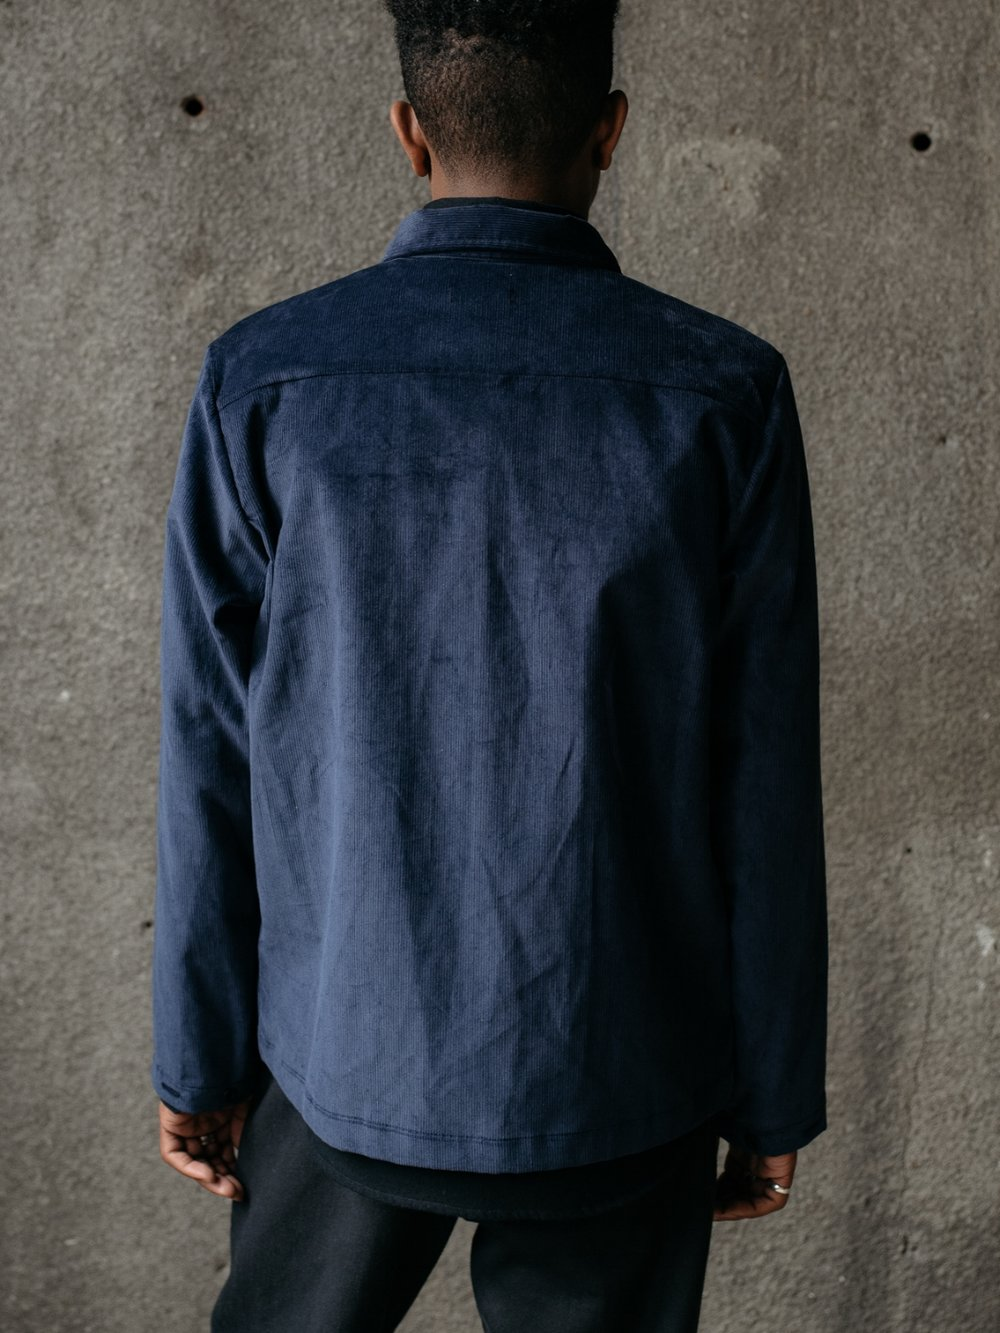 evan-kinori-field-shirt-blue-corduroy-fall-2017-2